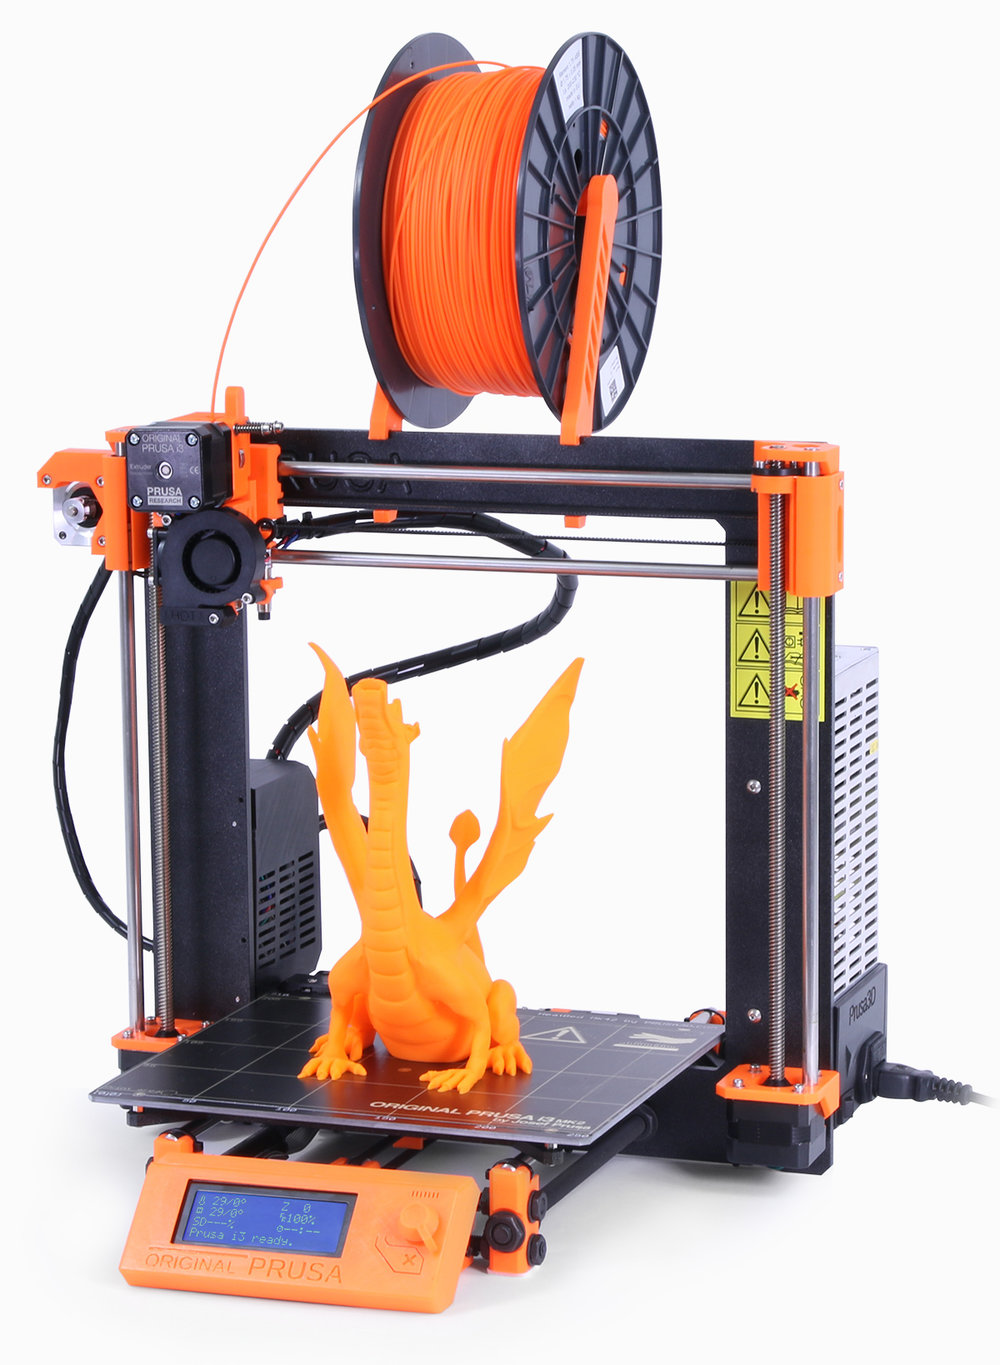 The Prusa i3 MK2 now includes a powerful automated calibration system